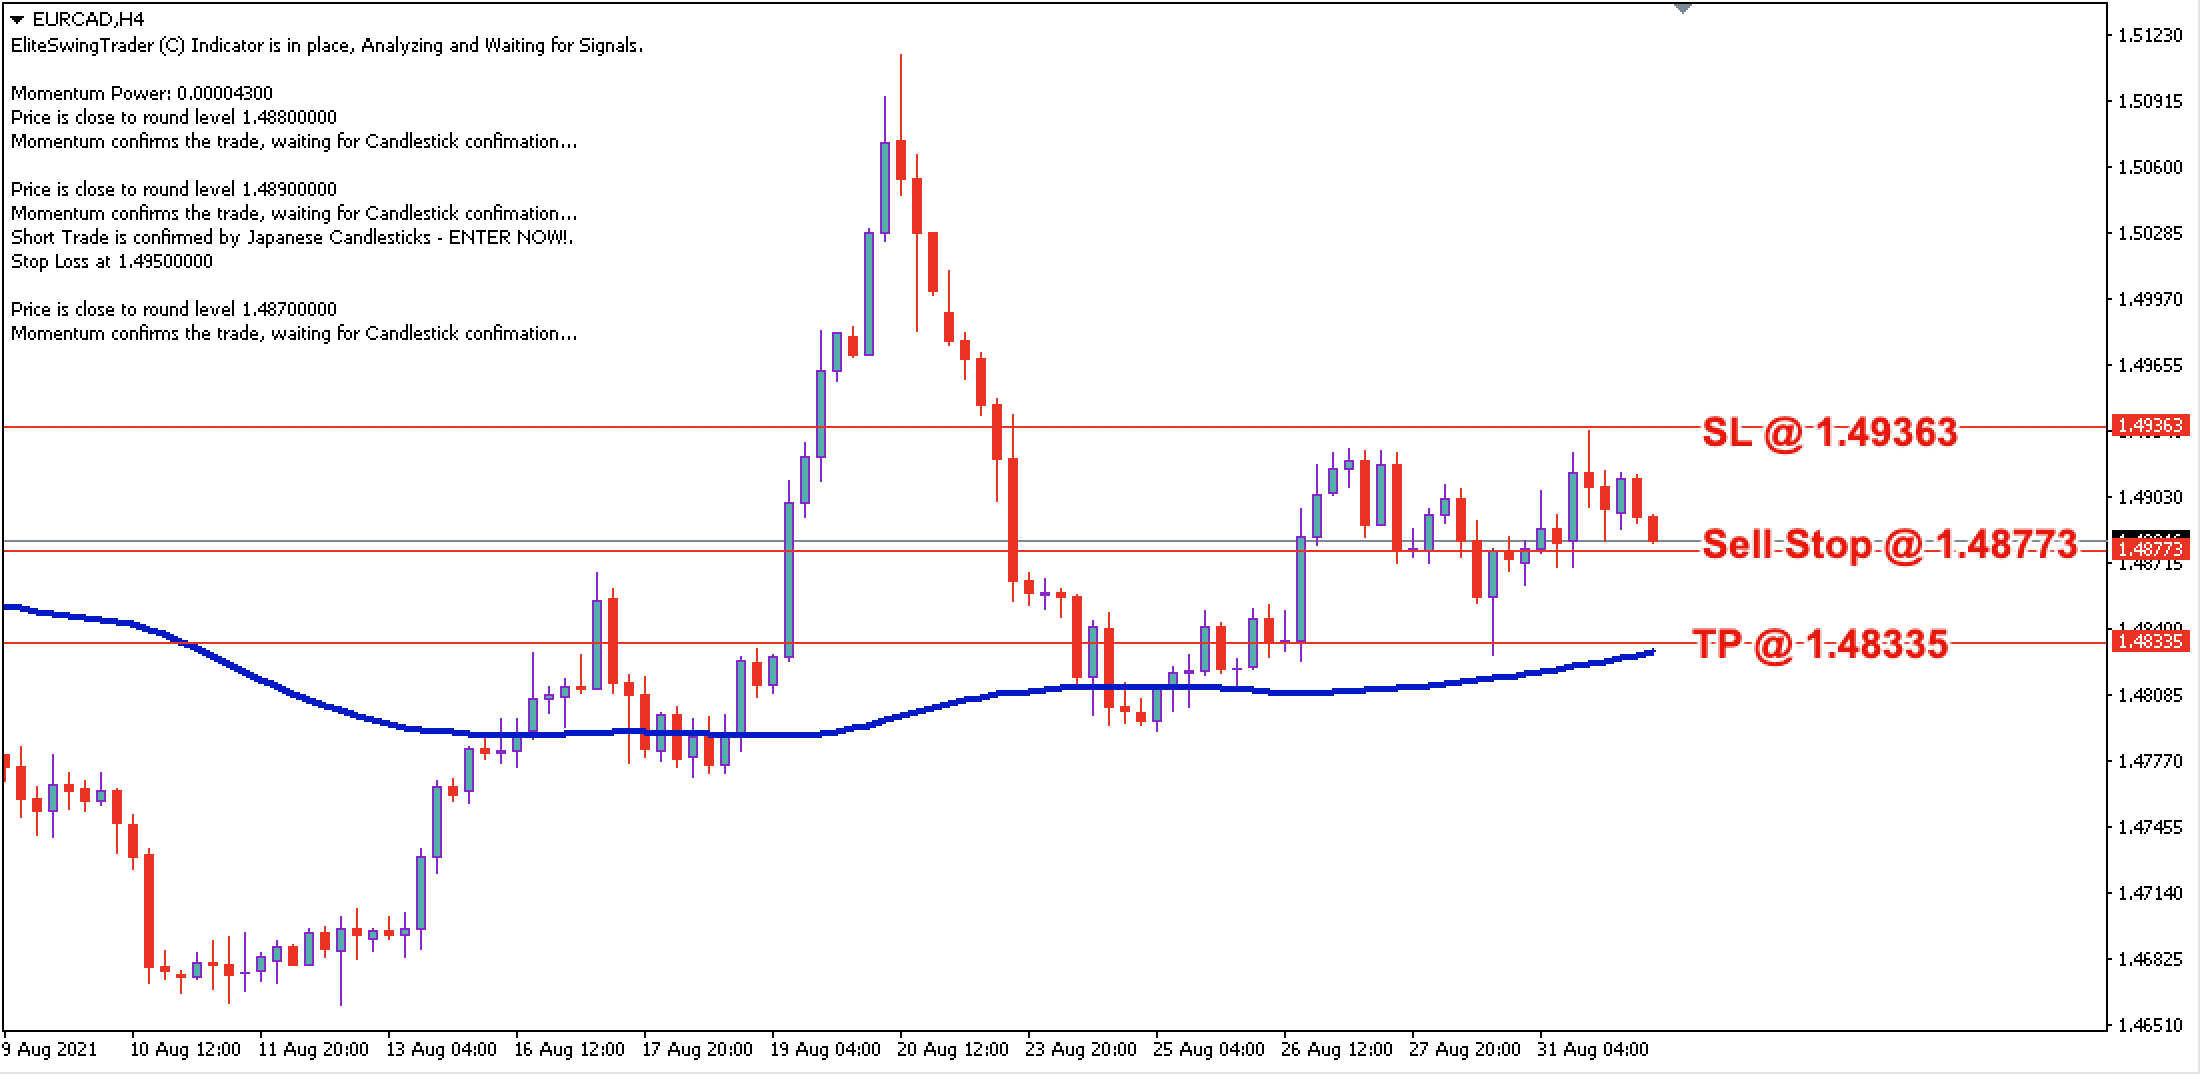 EUR/CAD Daily Price Forecast – 1st Sept 2021